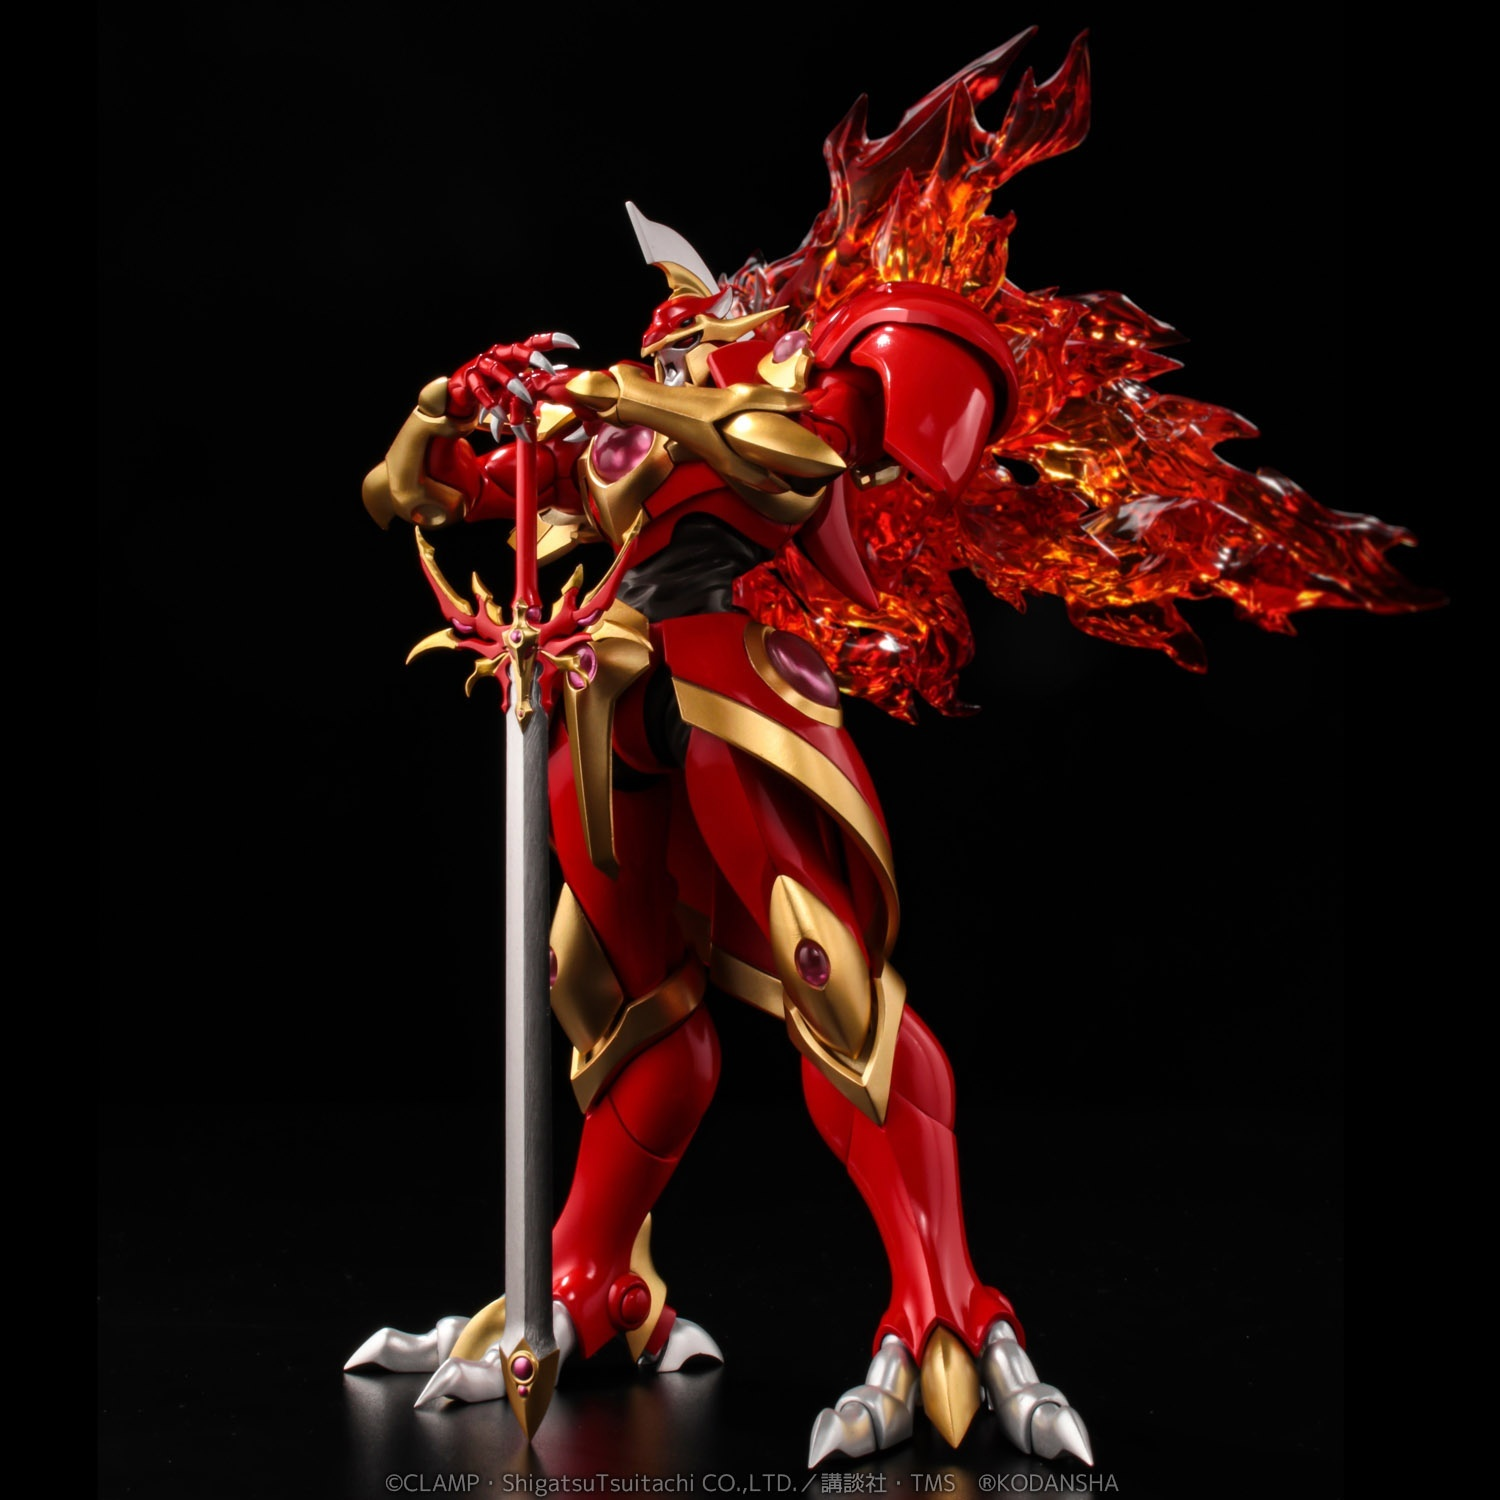 RIOBOT Magic Knight Rayearth Rayearth.jpg